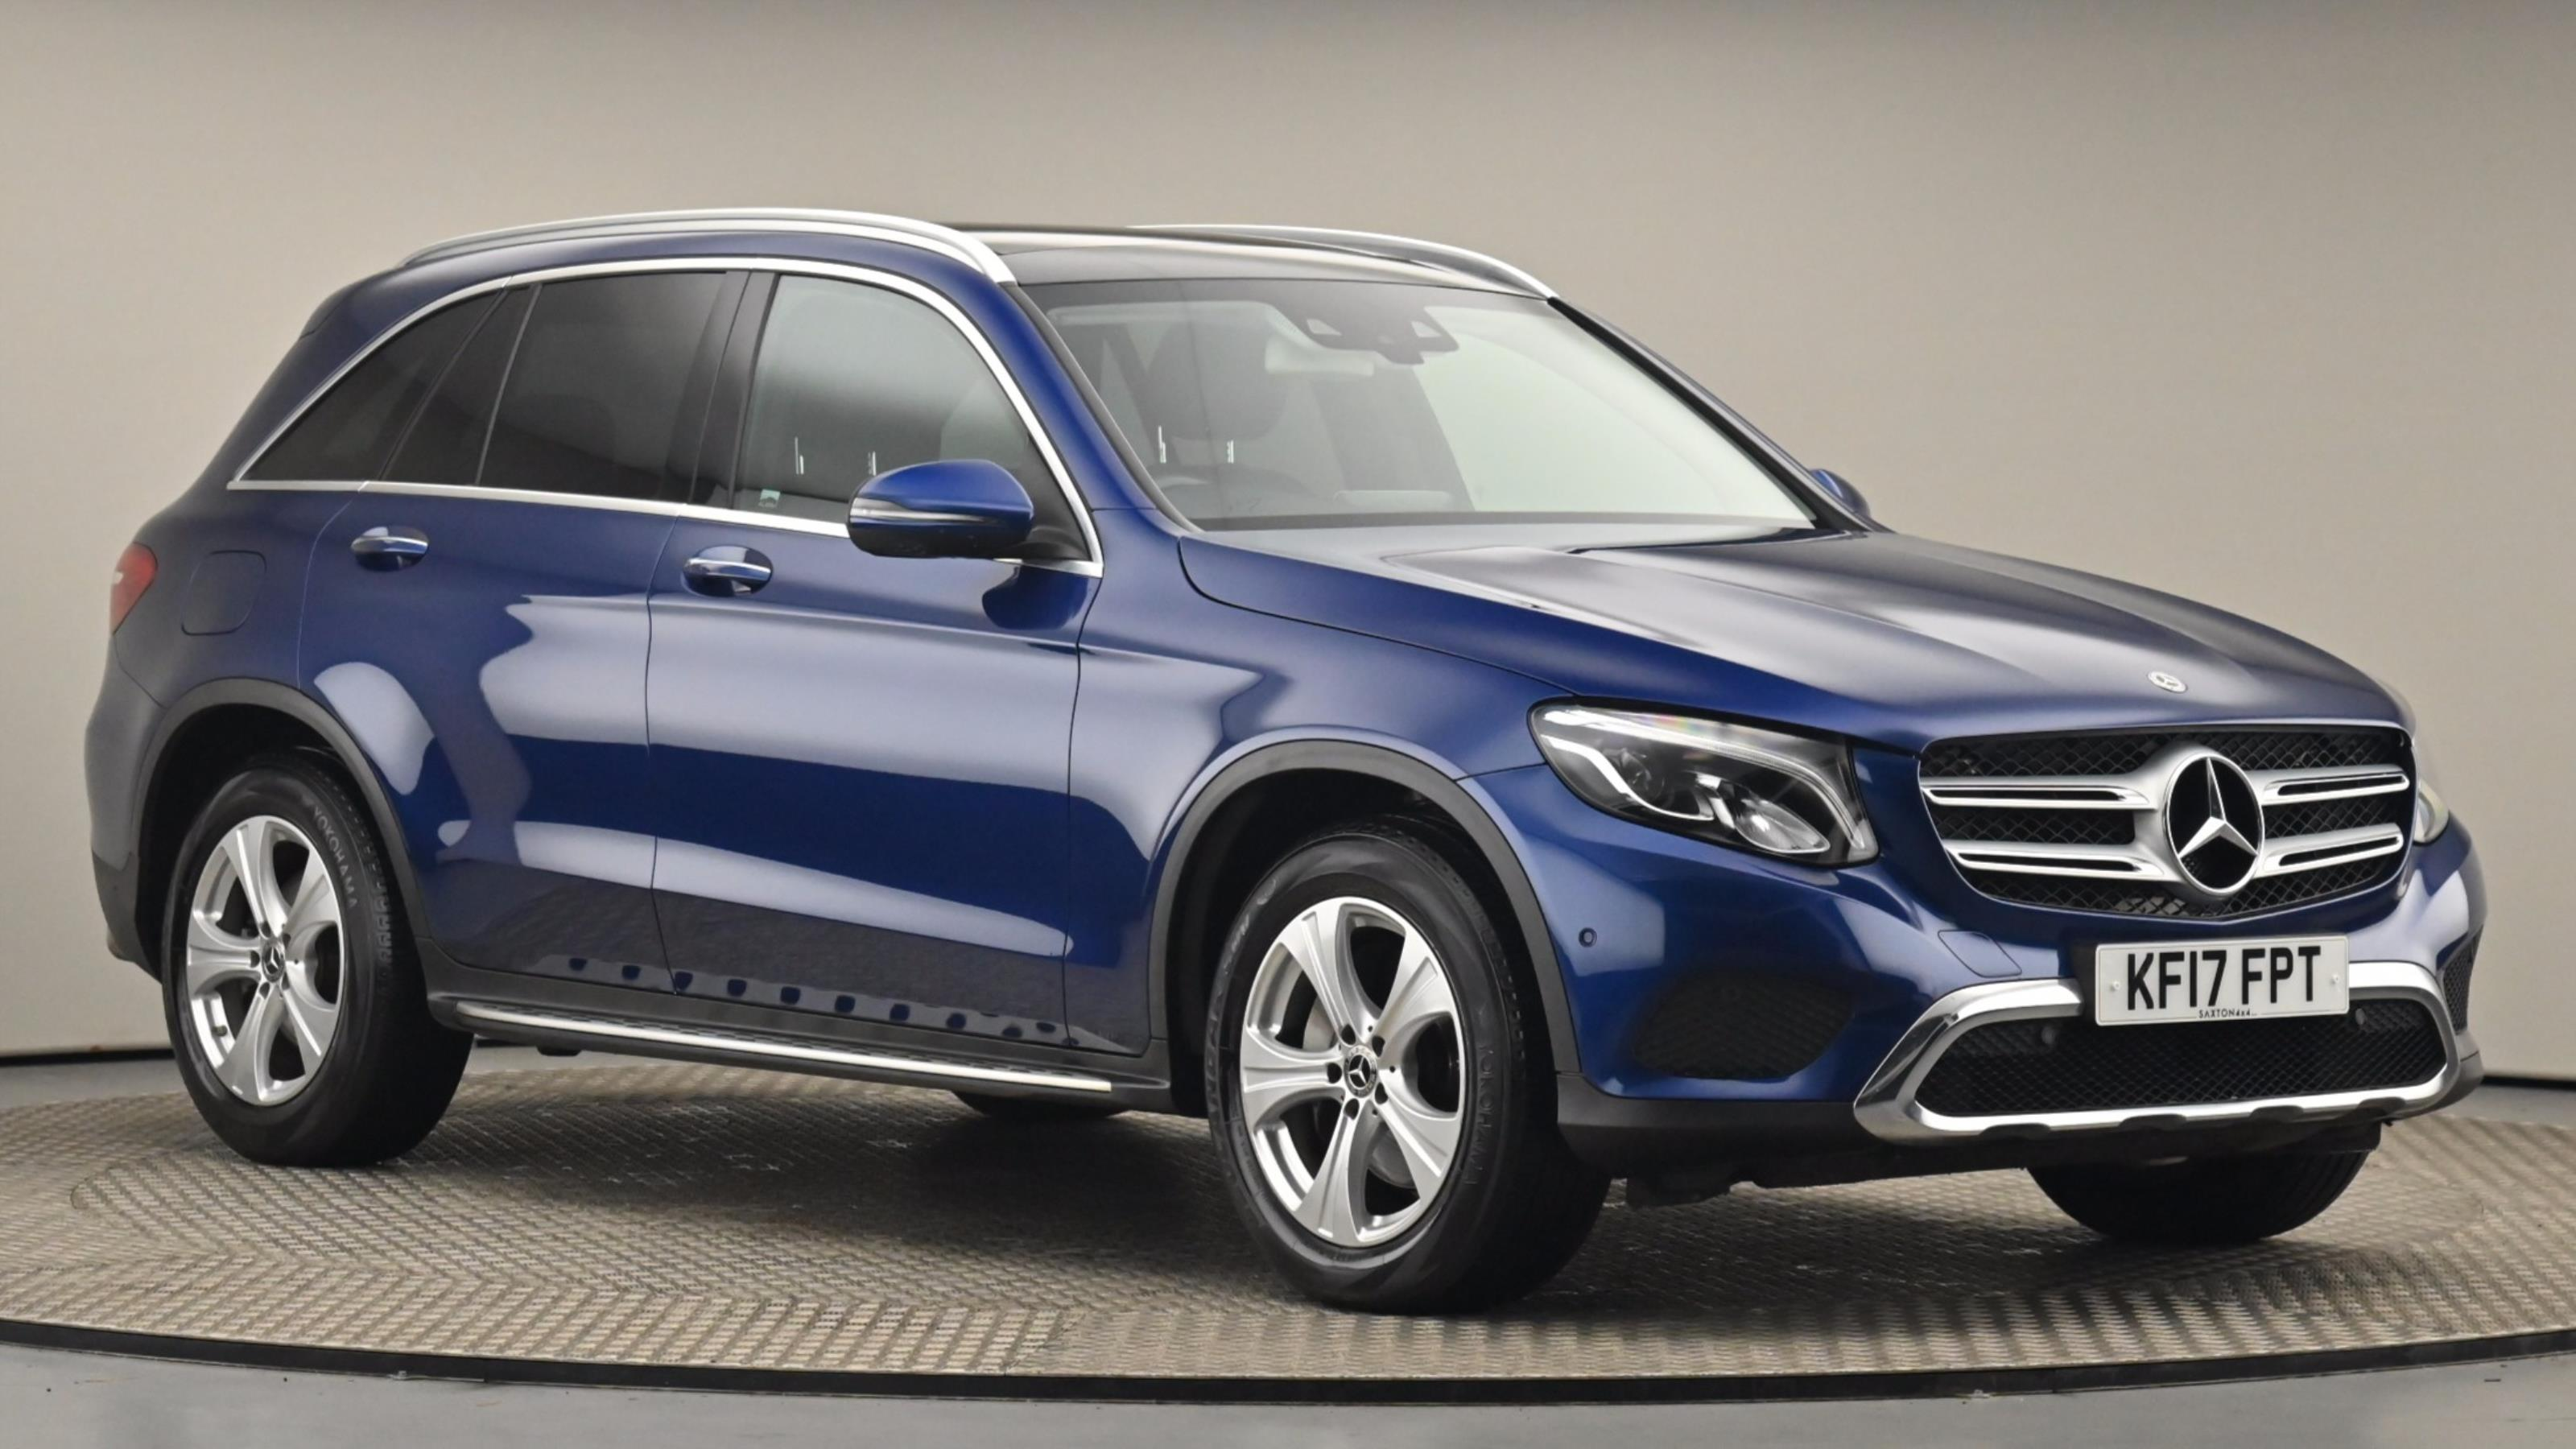 Used 2017 Mercedes-Benz GLC COUPE GLC 220d 4Matic Sport Premium Plus 5dr 9G-Tronic at Saxton4x4